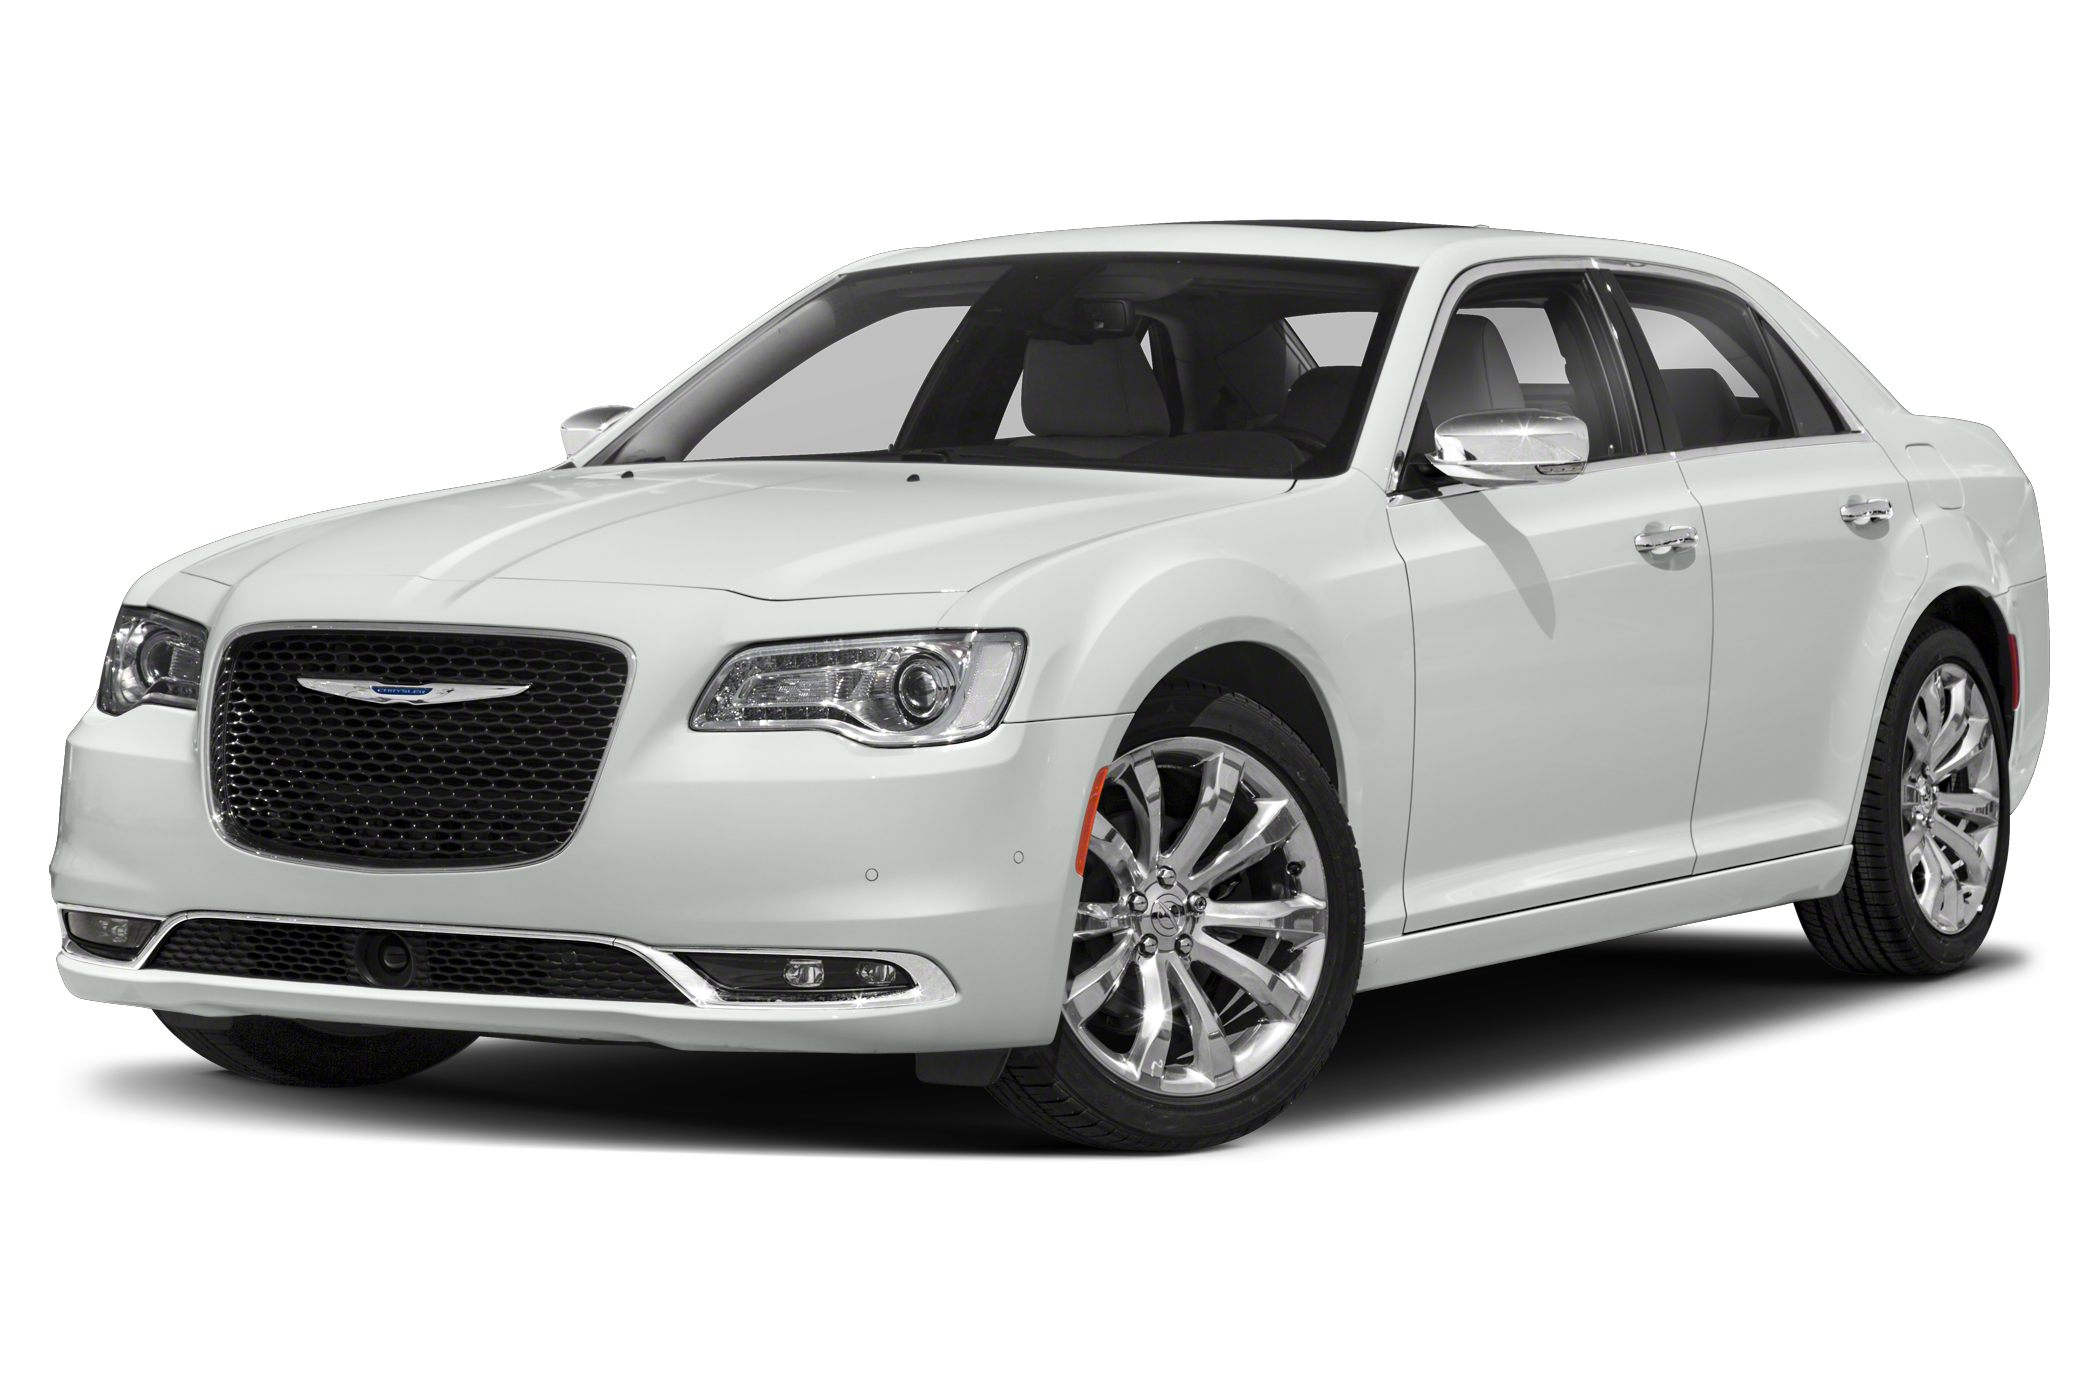 car images wallpaper pixel hd chrysler motown and wallpapers